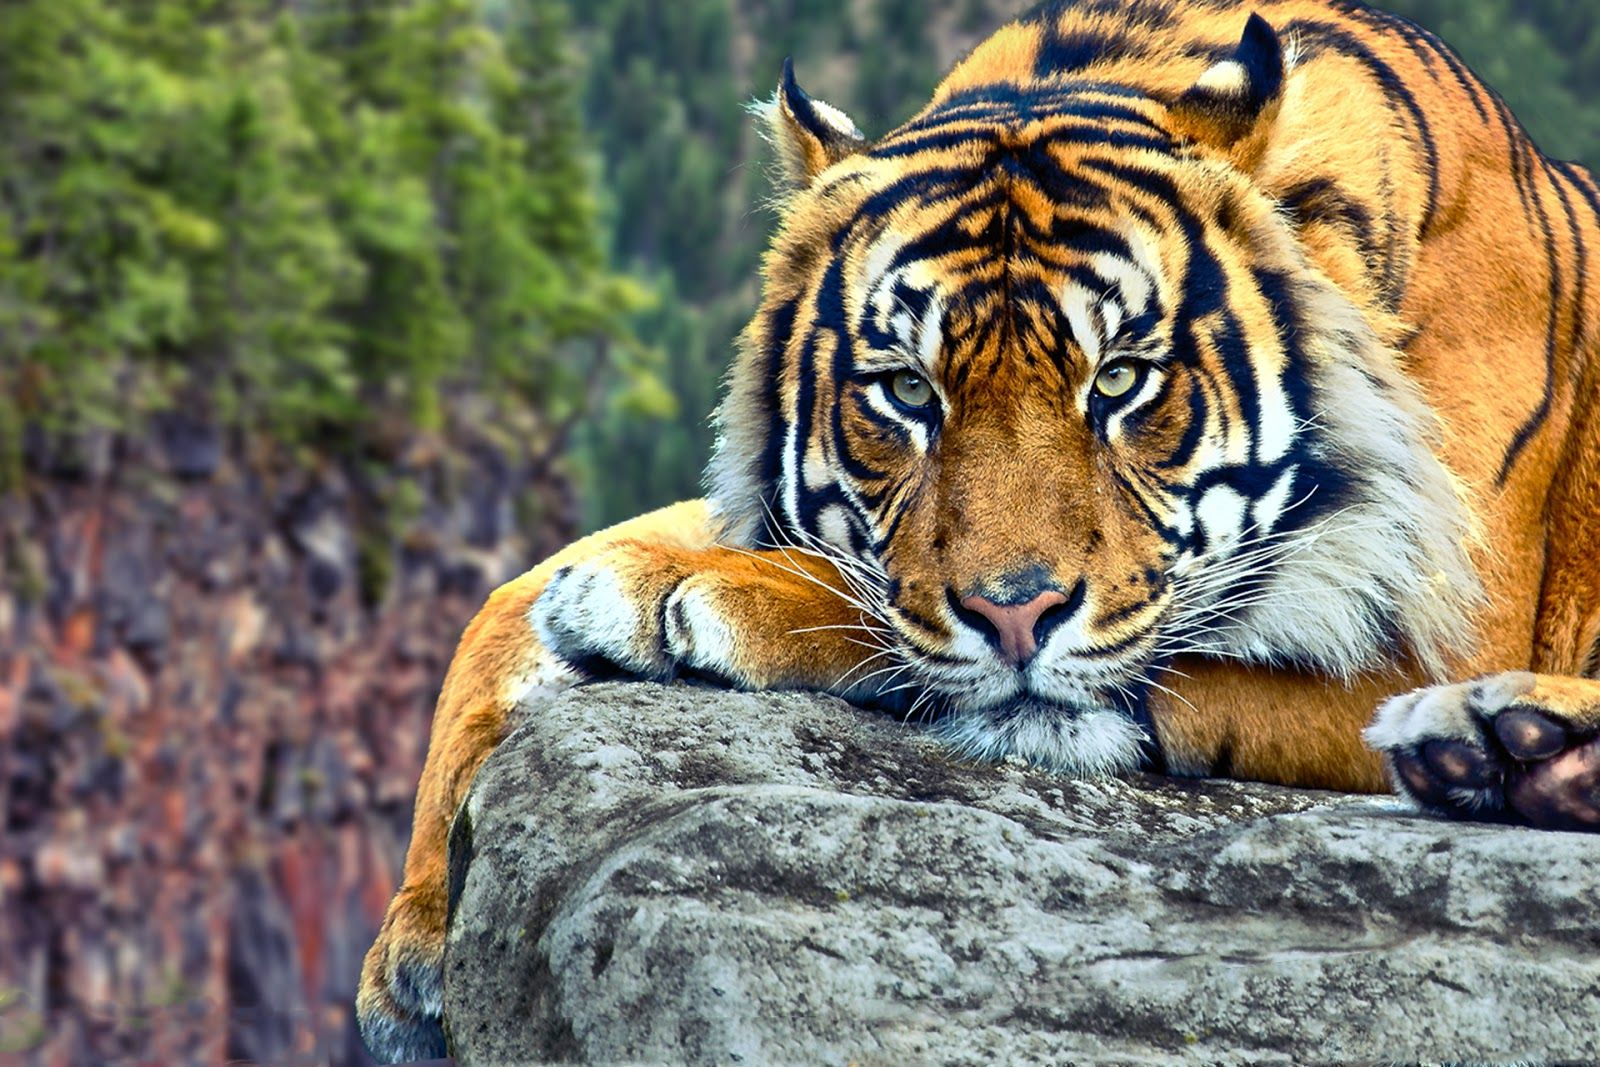 Wonderful Wallpaper High Resolution Tiger - 570b6d296d5b63a43960bda63ff8ff15  Image_426047.jpg